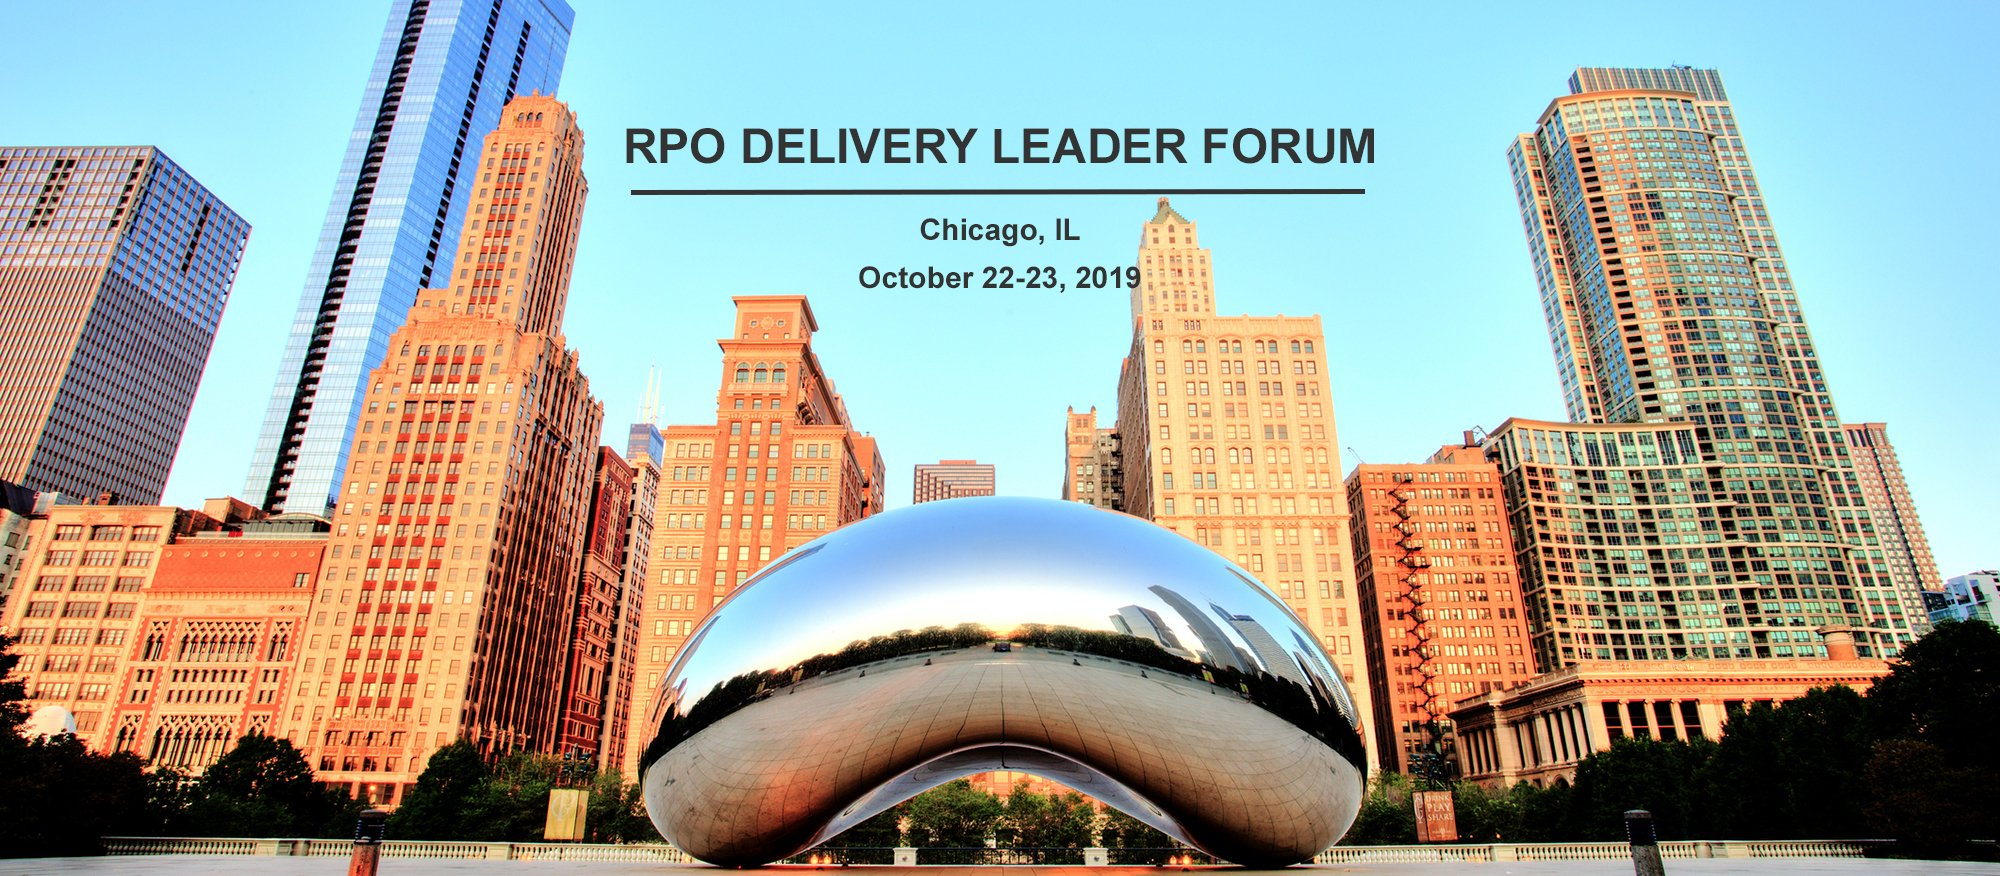 RPOA Launches First Forum of Its Kind for RPO Delivery Leaders